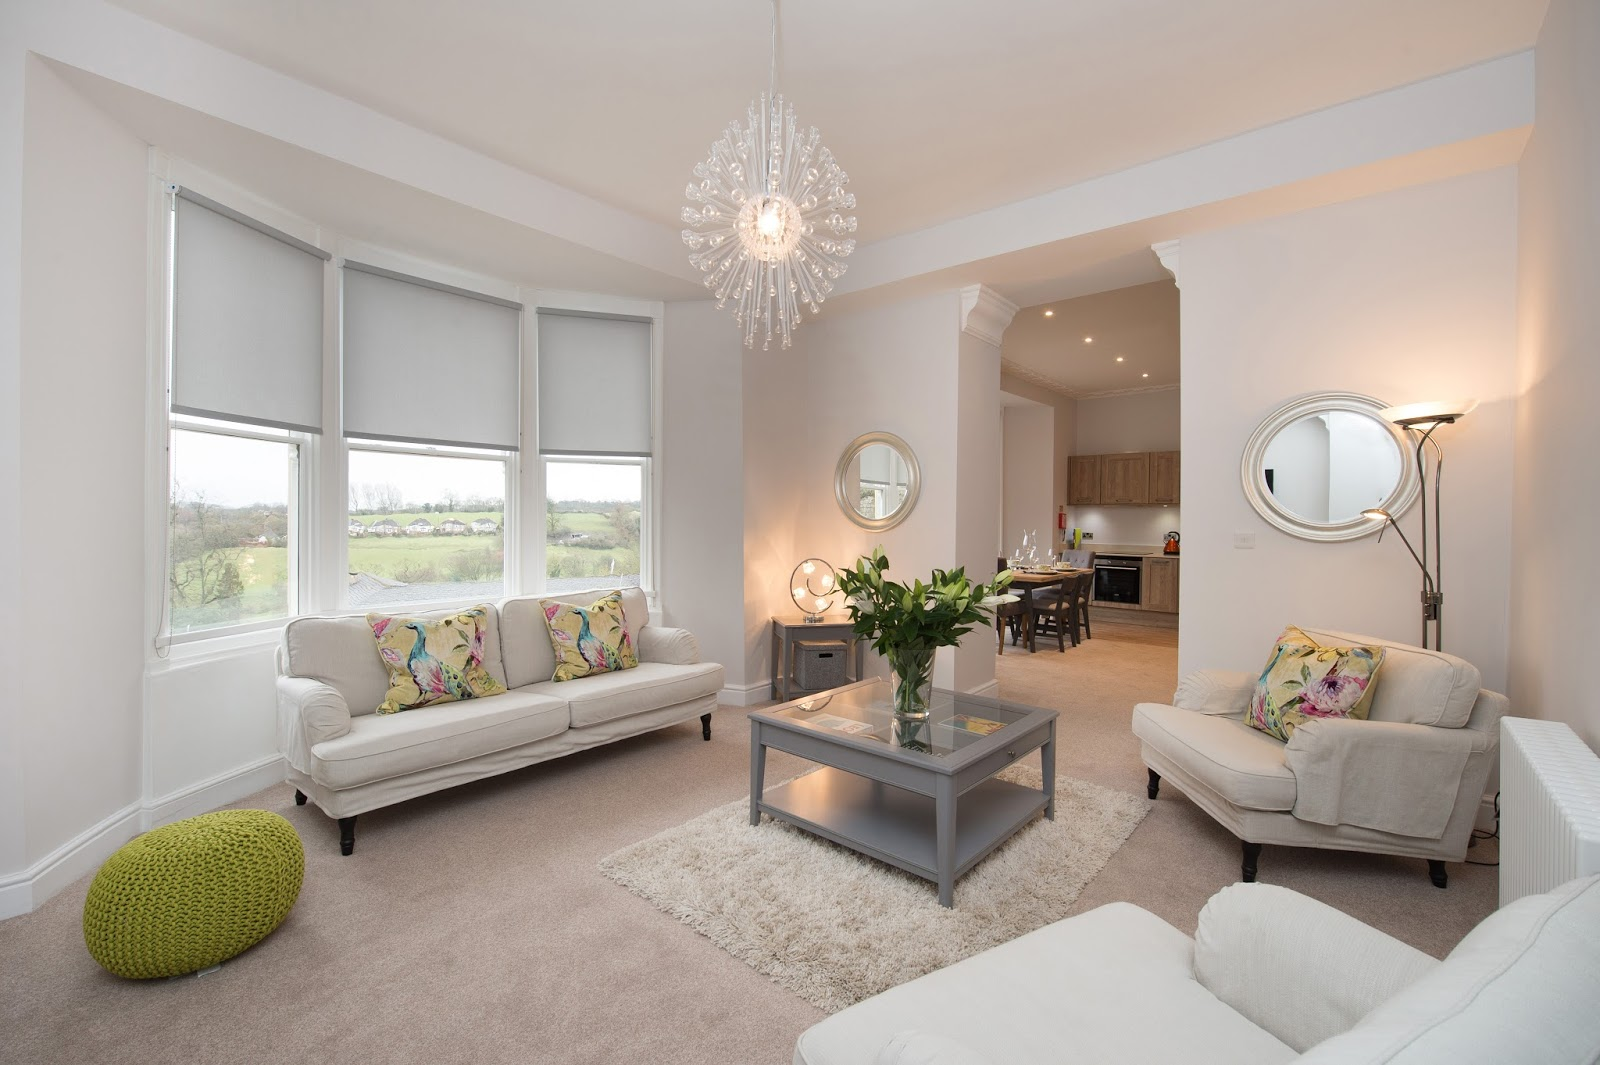 We review One Frenchgate House - A Luxury Serviced 4 Bedroom Apartment in Richmond, North Yorkshire. Available to rent for holidays and short breaks - lounge area